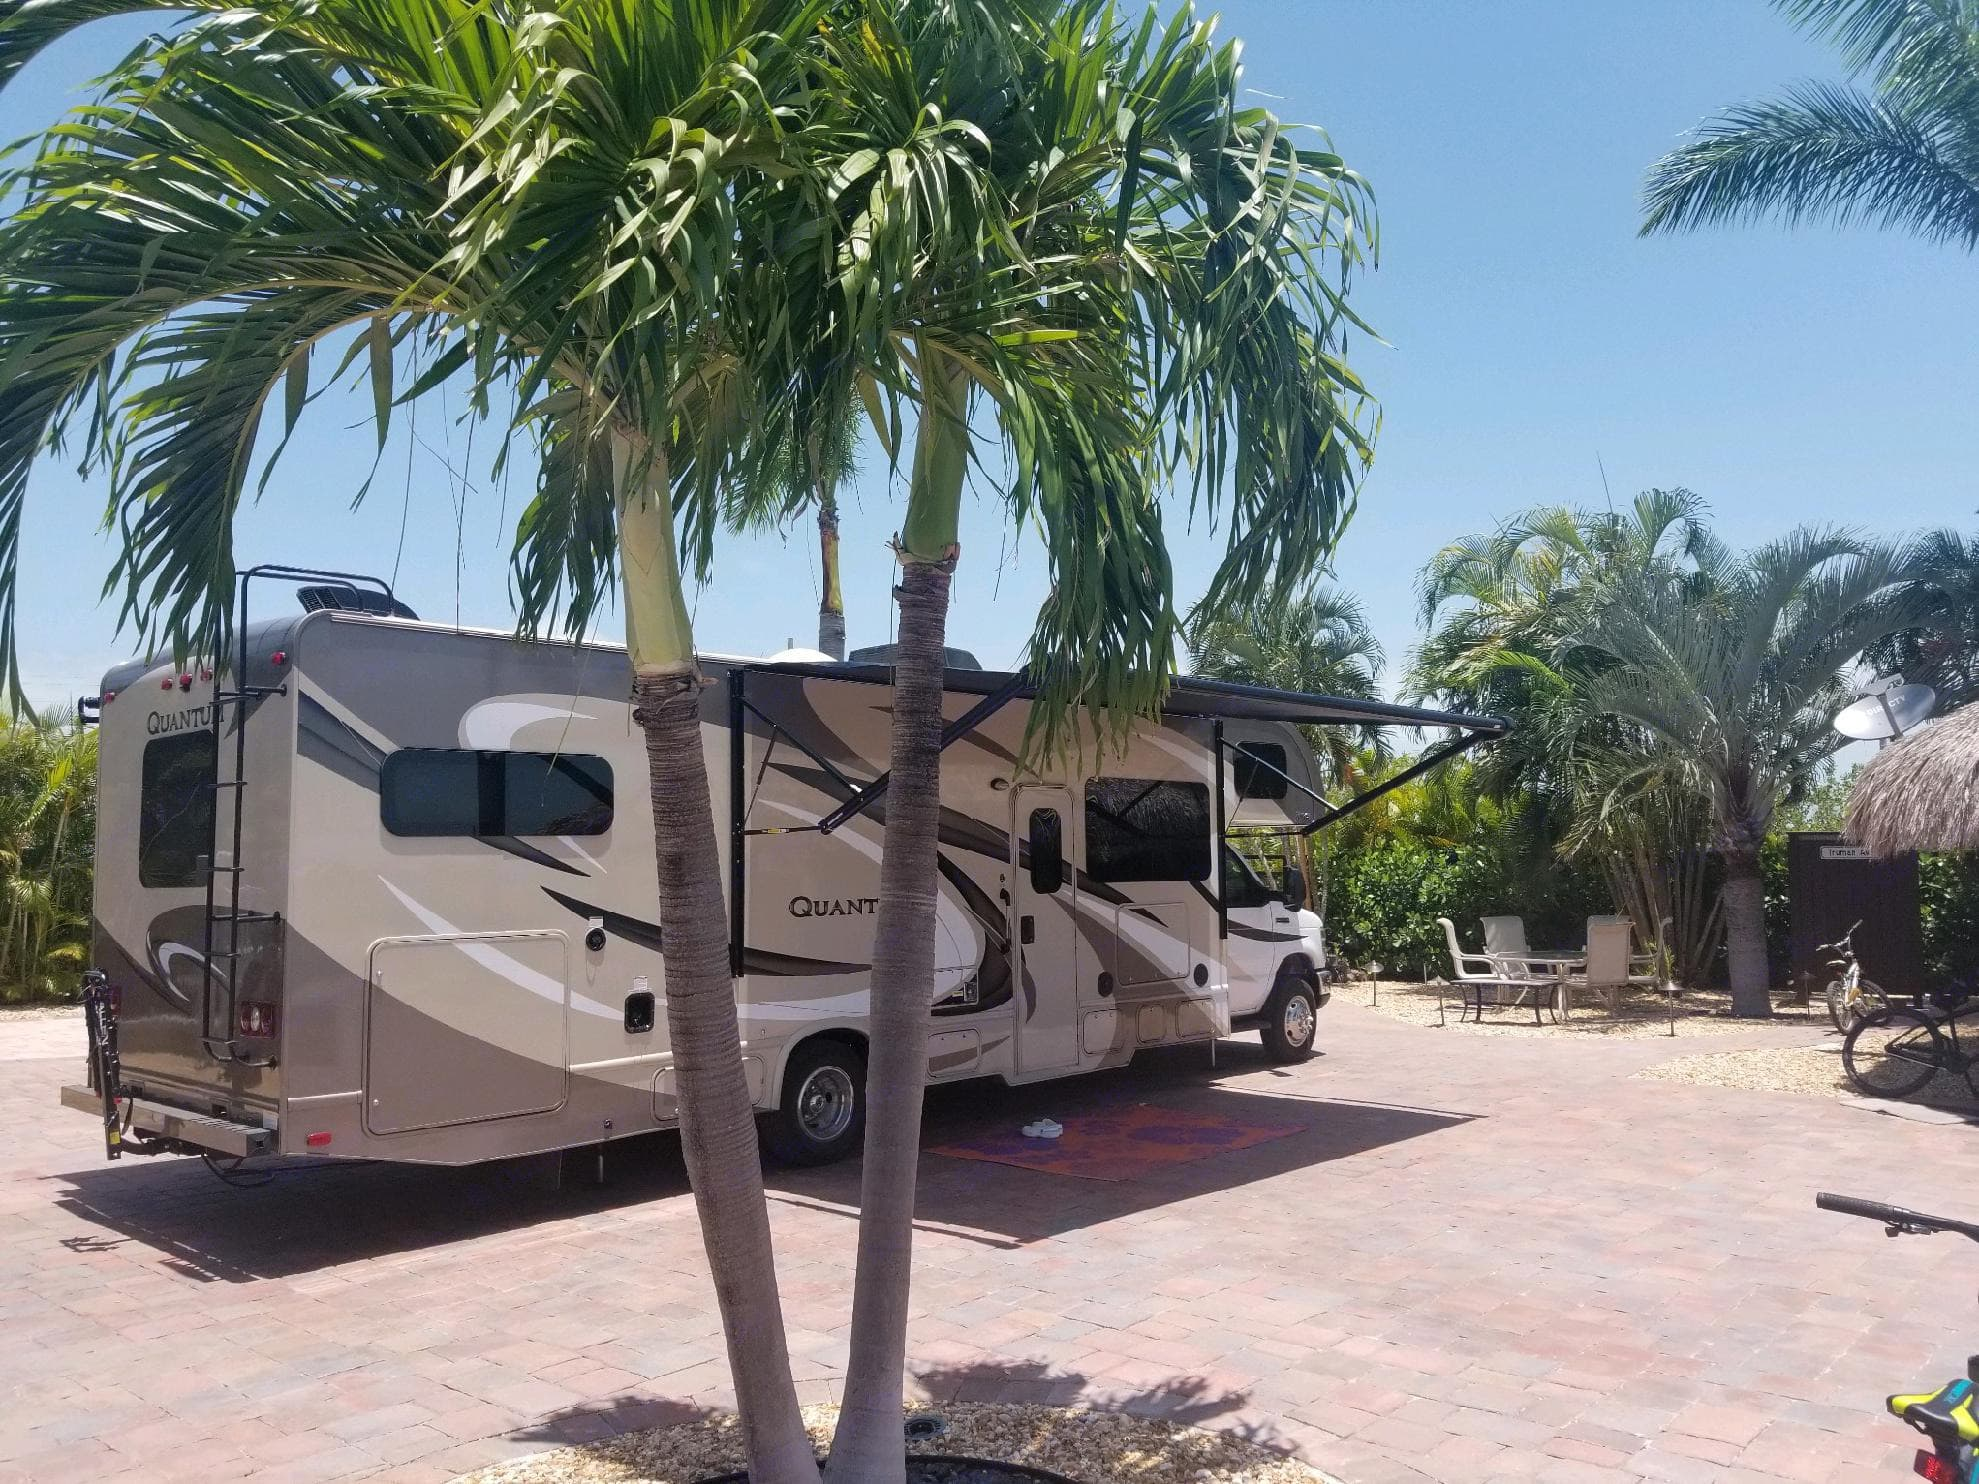 A Very Easy driving RV with LOTS of Room for those Ultimate Adventures!!   2019 Renters Photo. Thor Quantum 2017